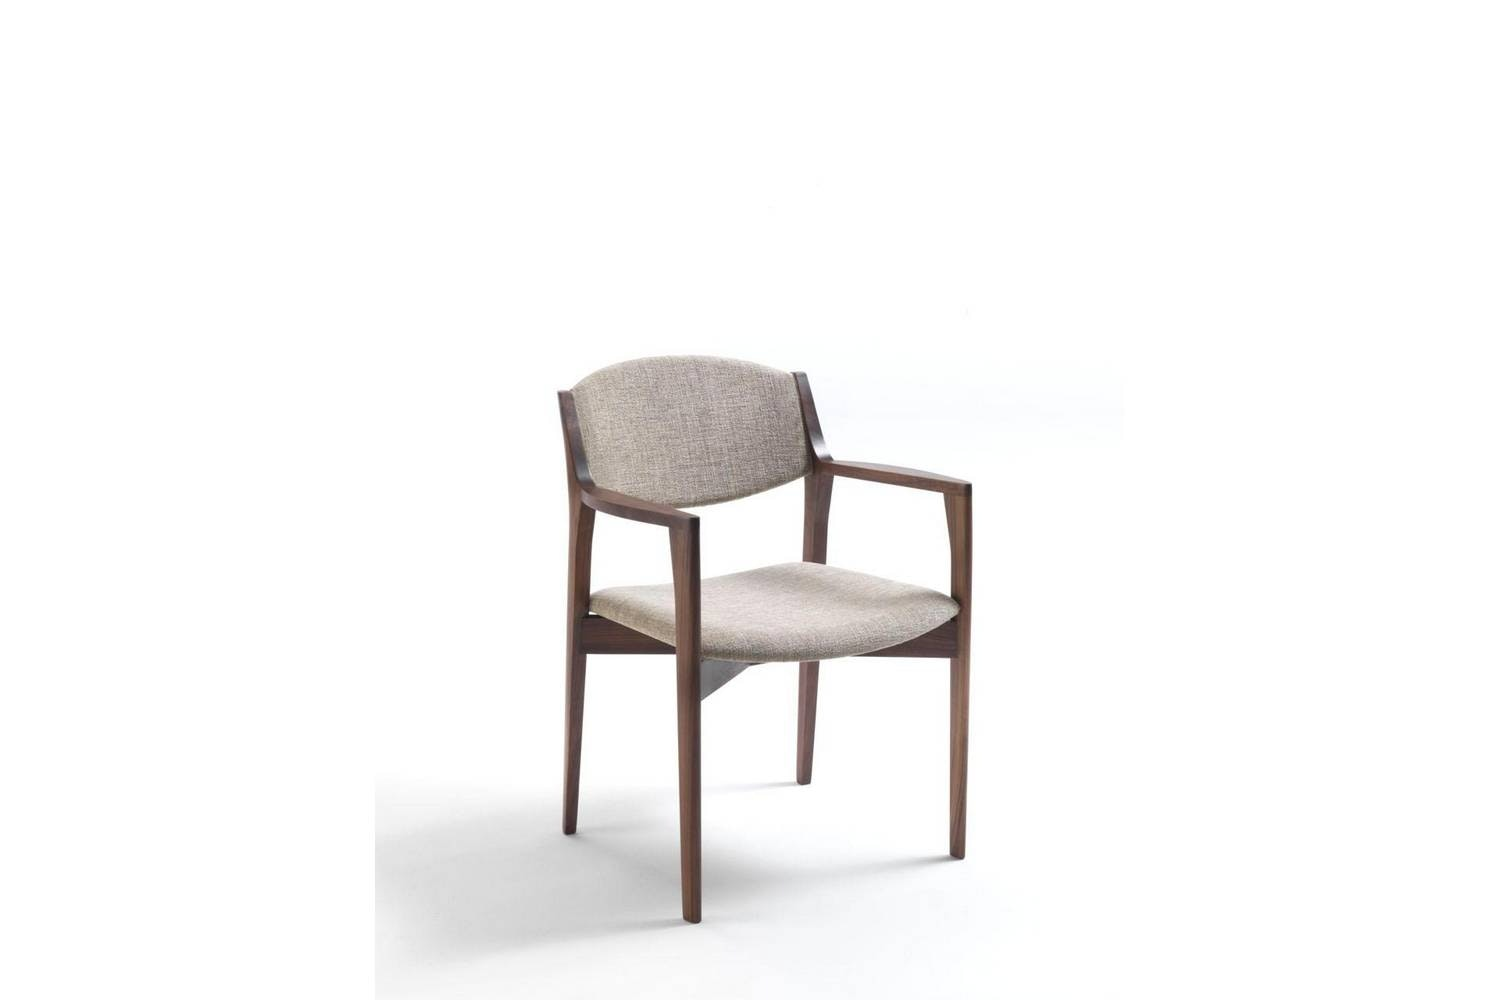 Emy Chair by P. Salvade for Porada